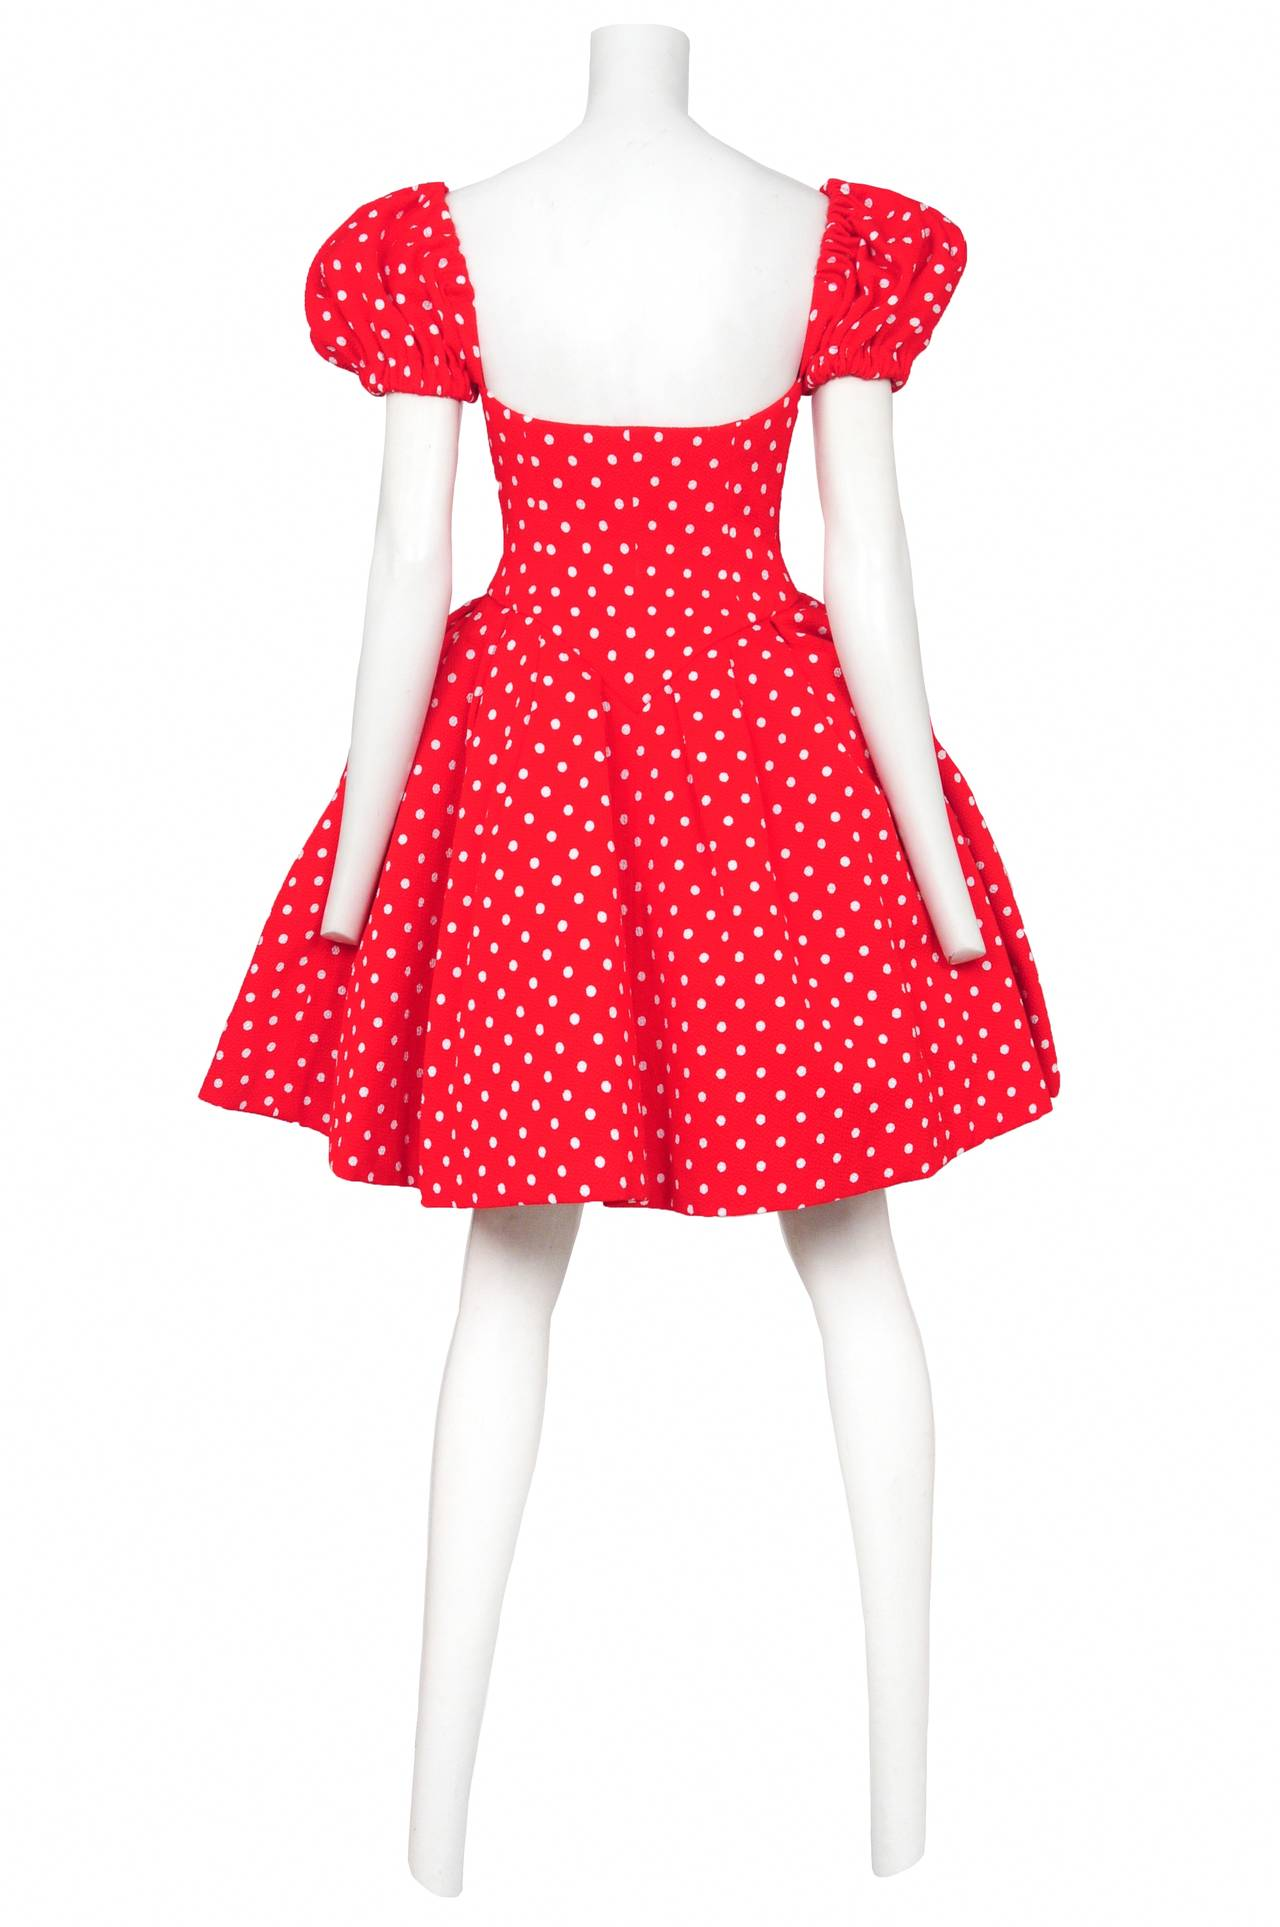 Vintage Christian Lacroix cotton blend cocktail dress featuring a red and white polka dot print, zippered front, puff sleeves, full skirt, inner corseted waist and two black grosgrain bows adorning the bust.